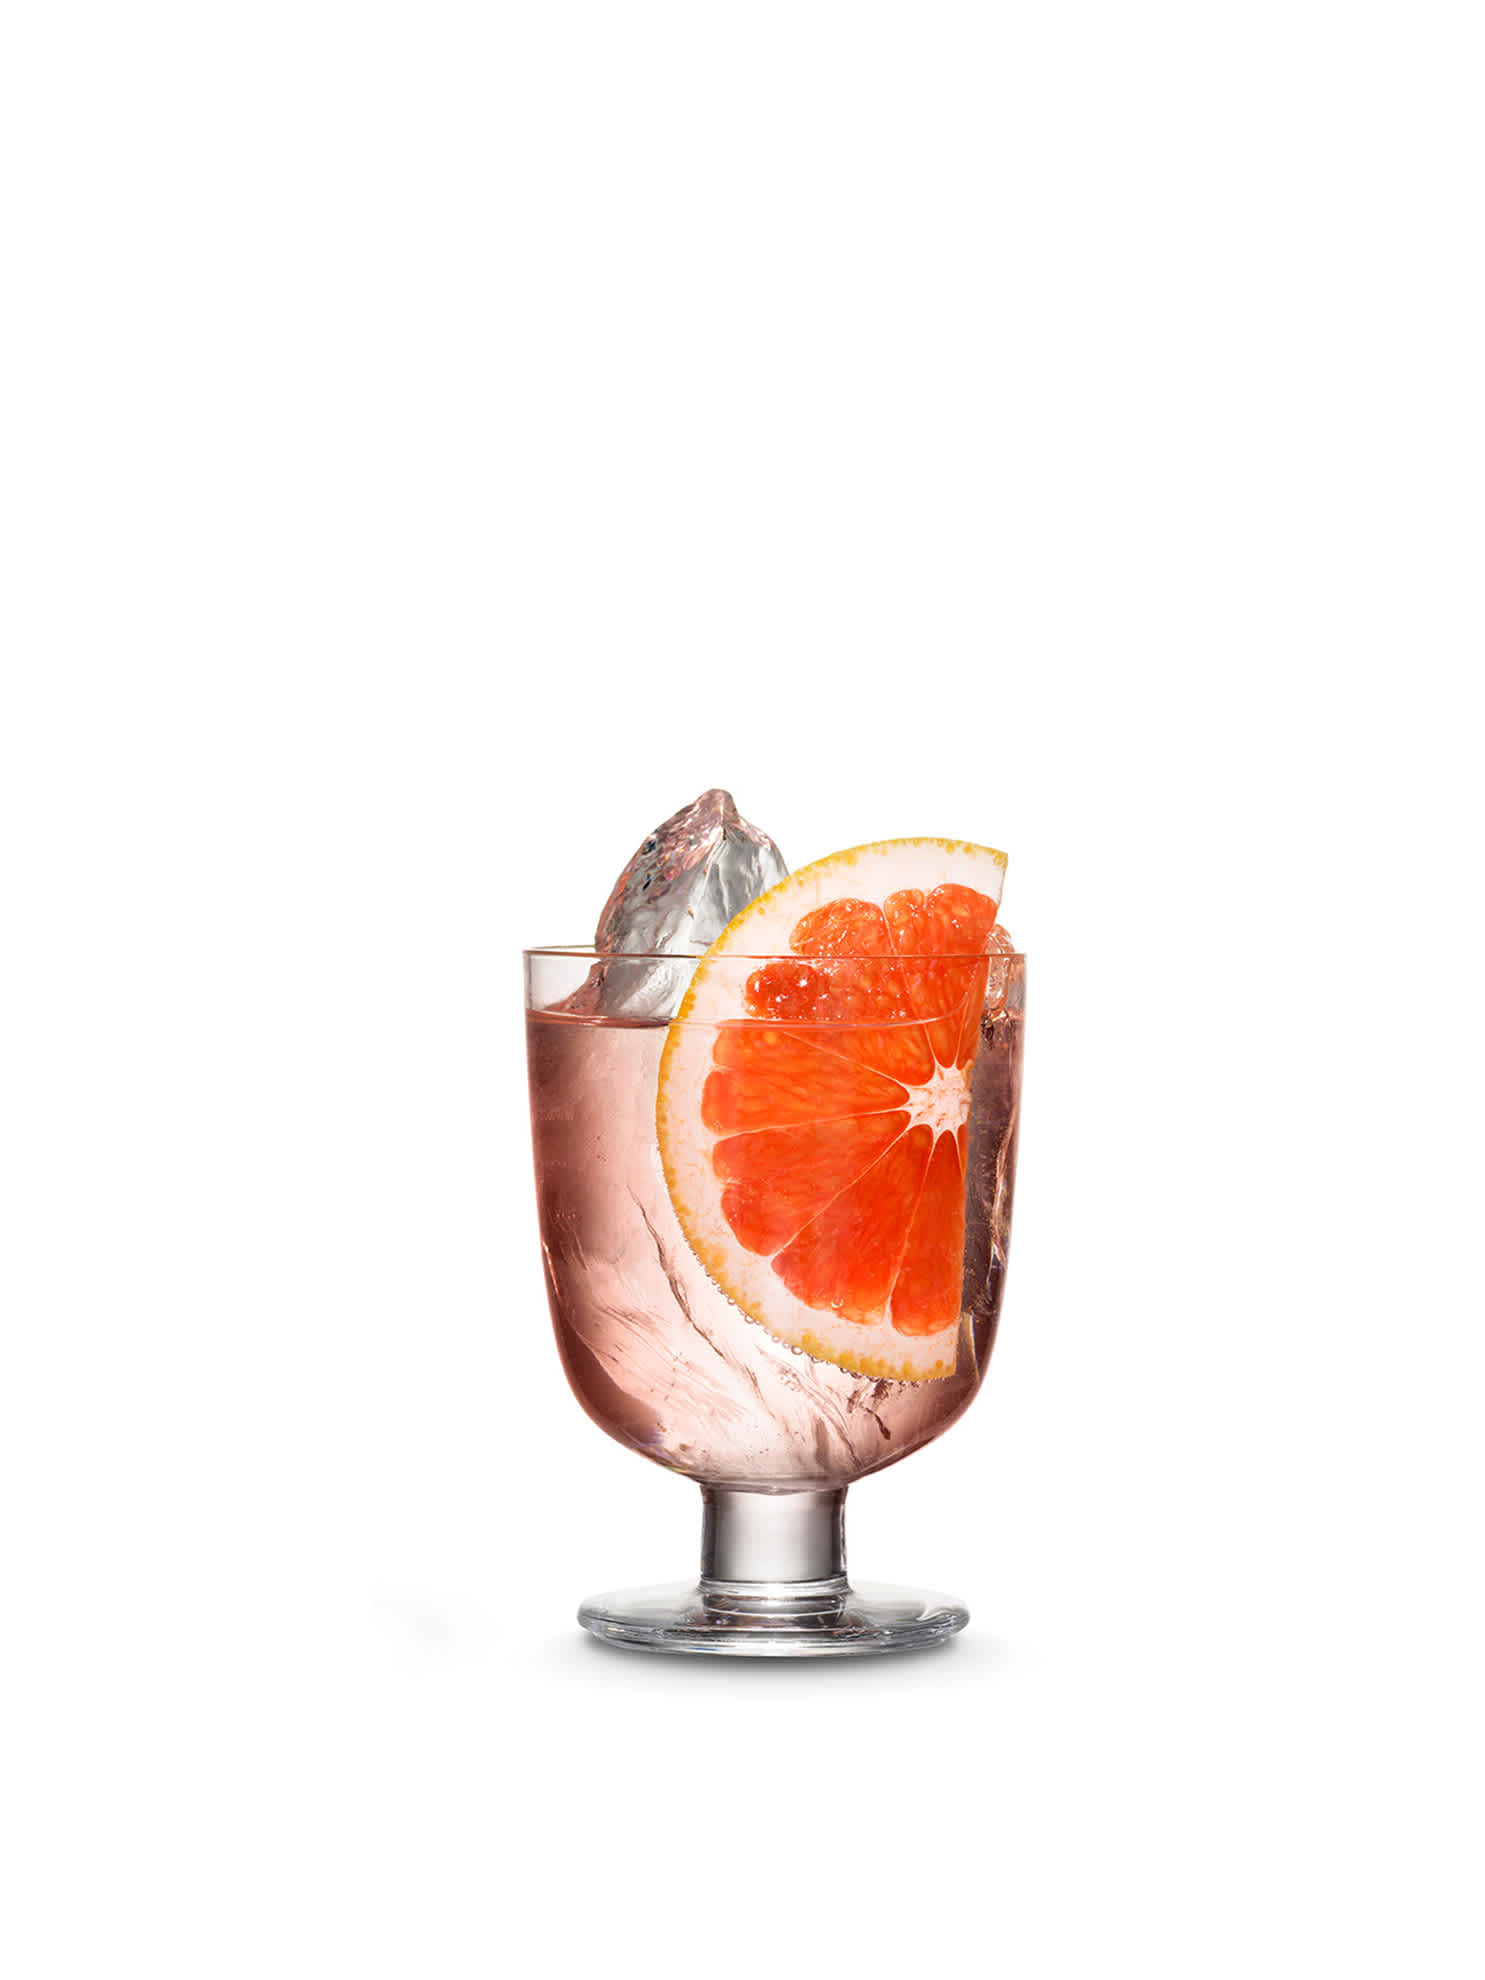 A bottle of Kyrö Pink Gin next to the perfect serve, in an Iittala cocktail glass, hand-cut shards of ice, and a slice of blood orange. Photo by KoskiSyväri.